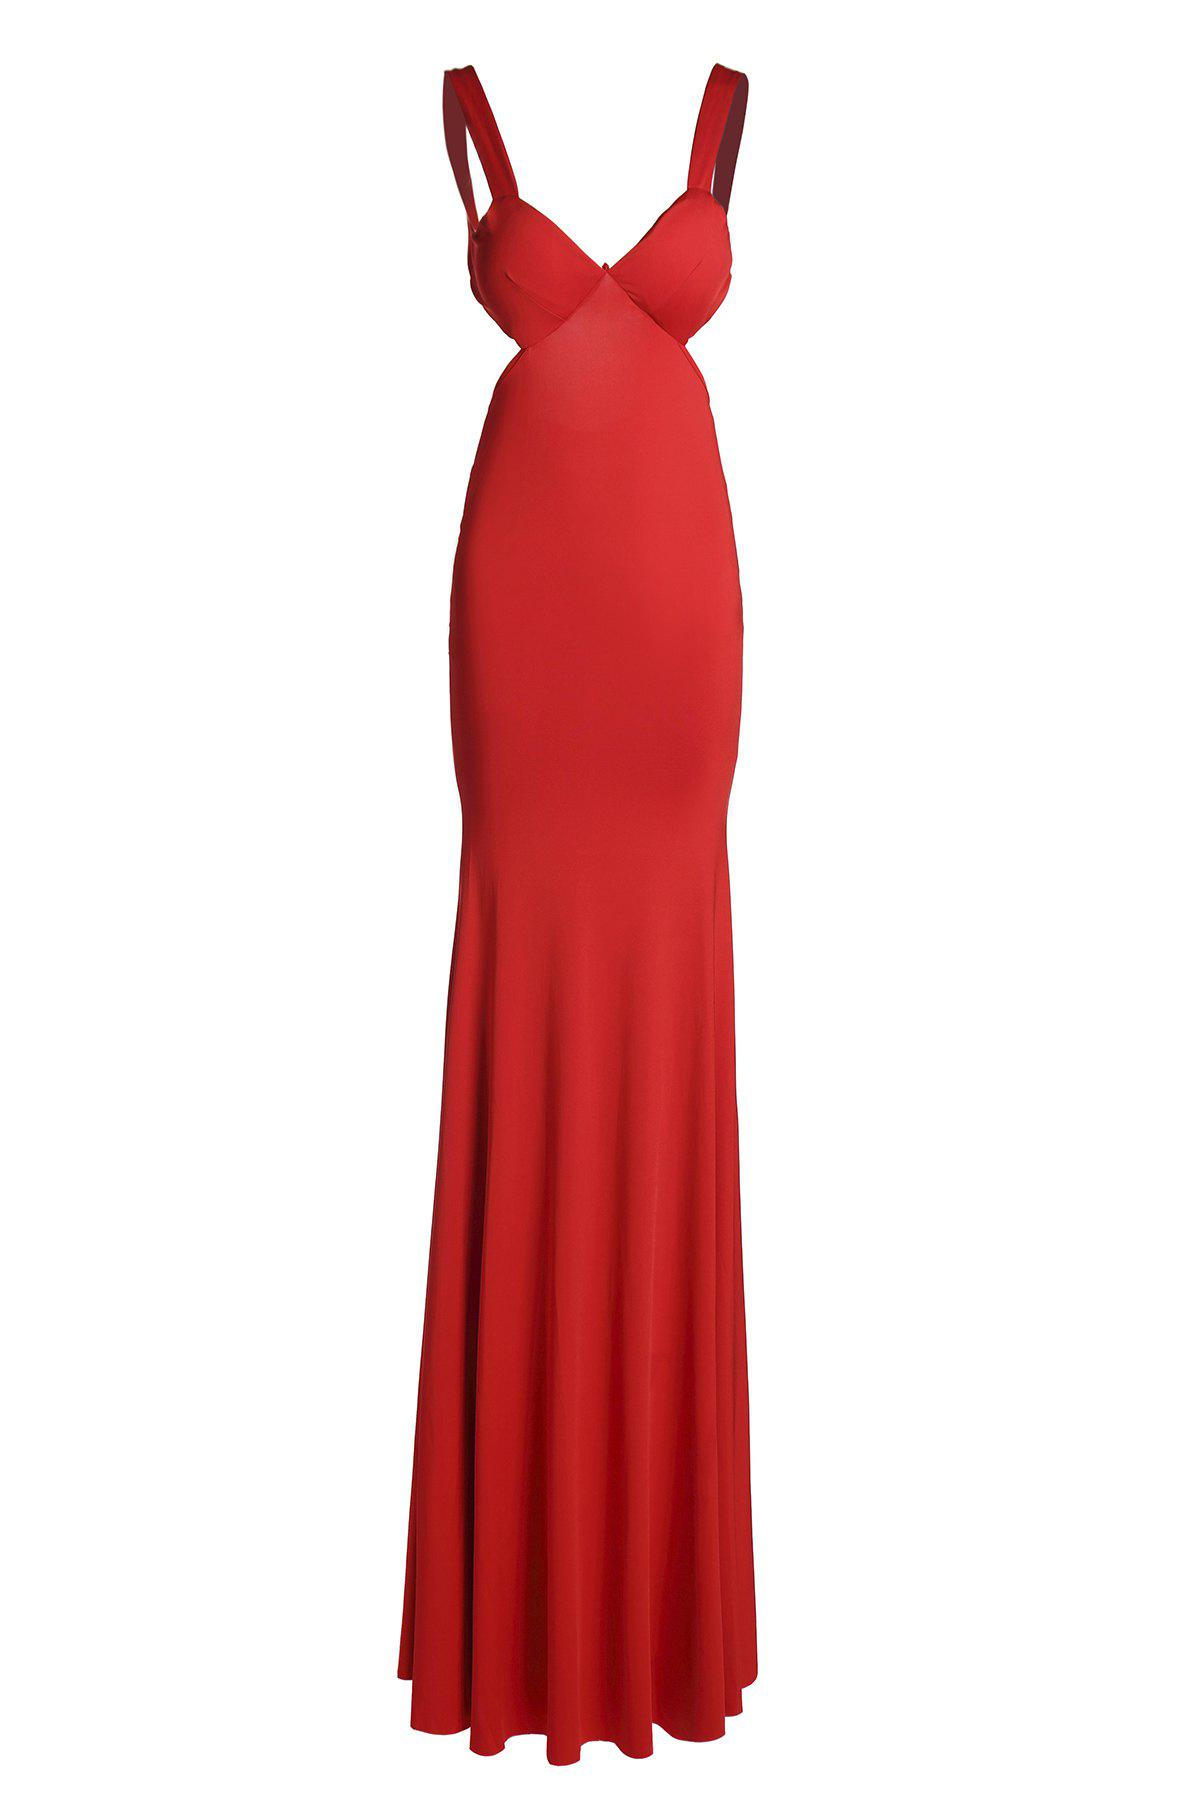 Women's Cut Out Halter Candy Color Mermaid Dress - RED S